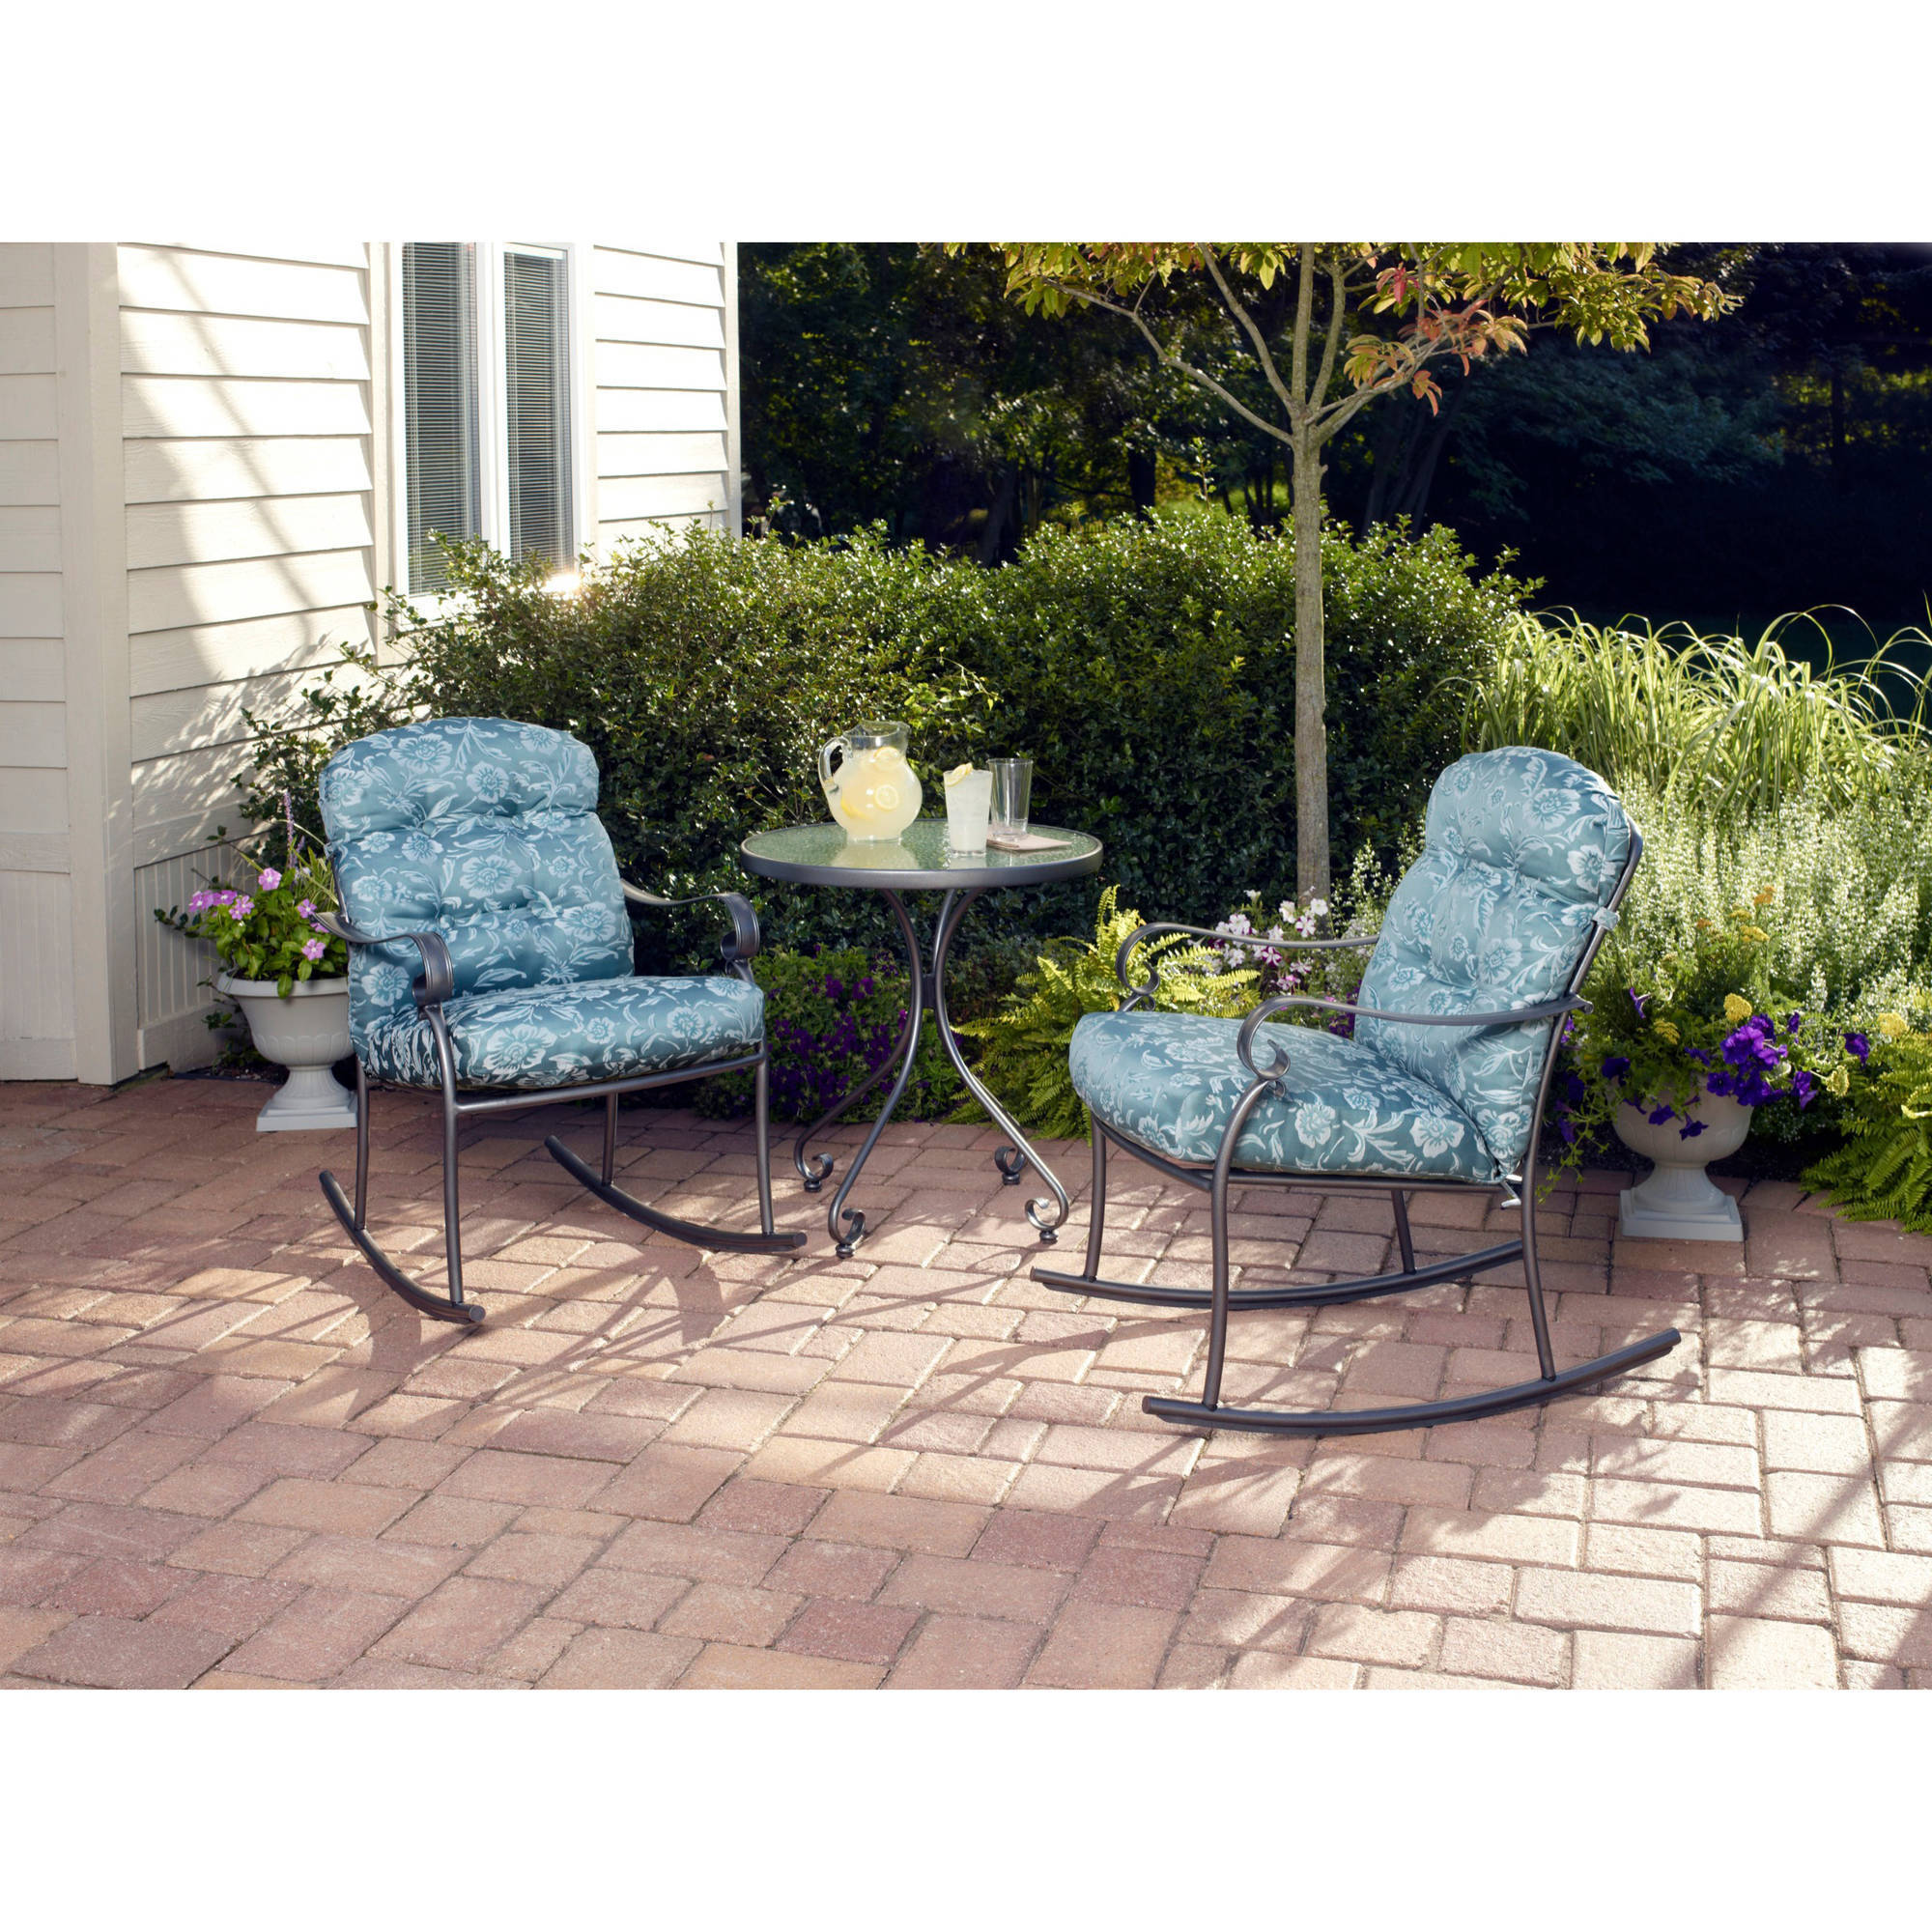 Mainstays Willow Springs 3-Piece Rocking Outdoor Bistro Set, Seats 2